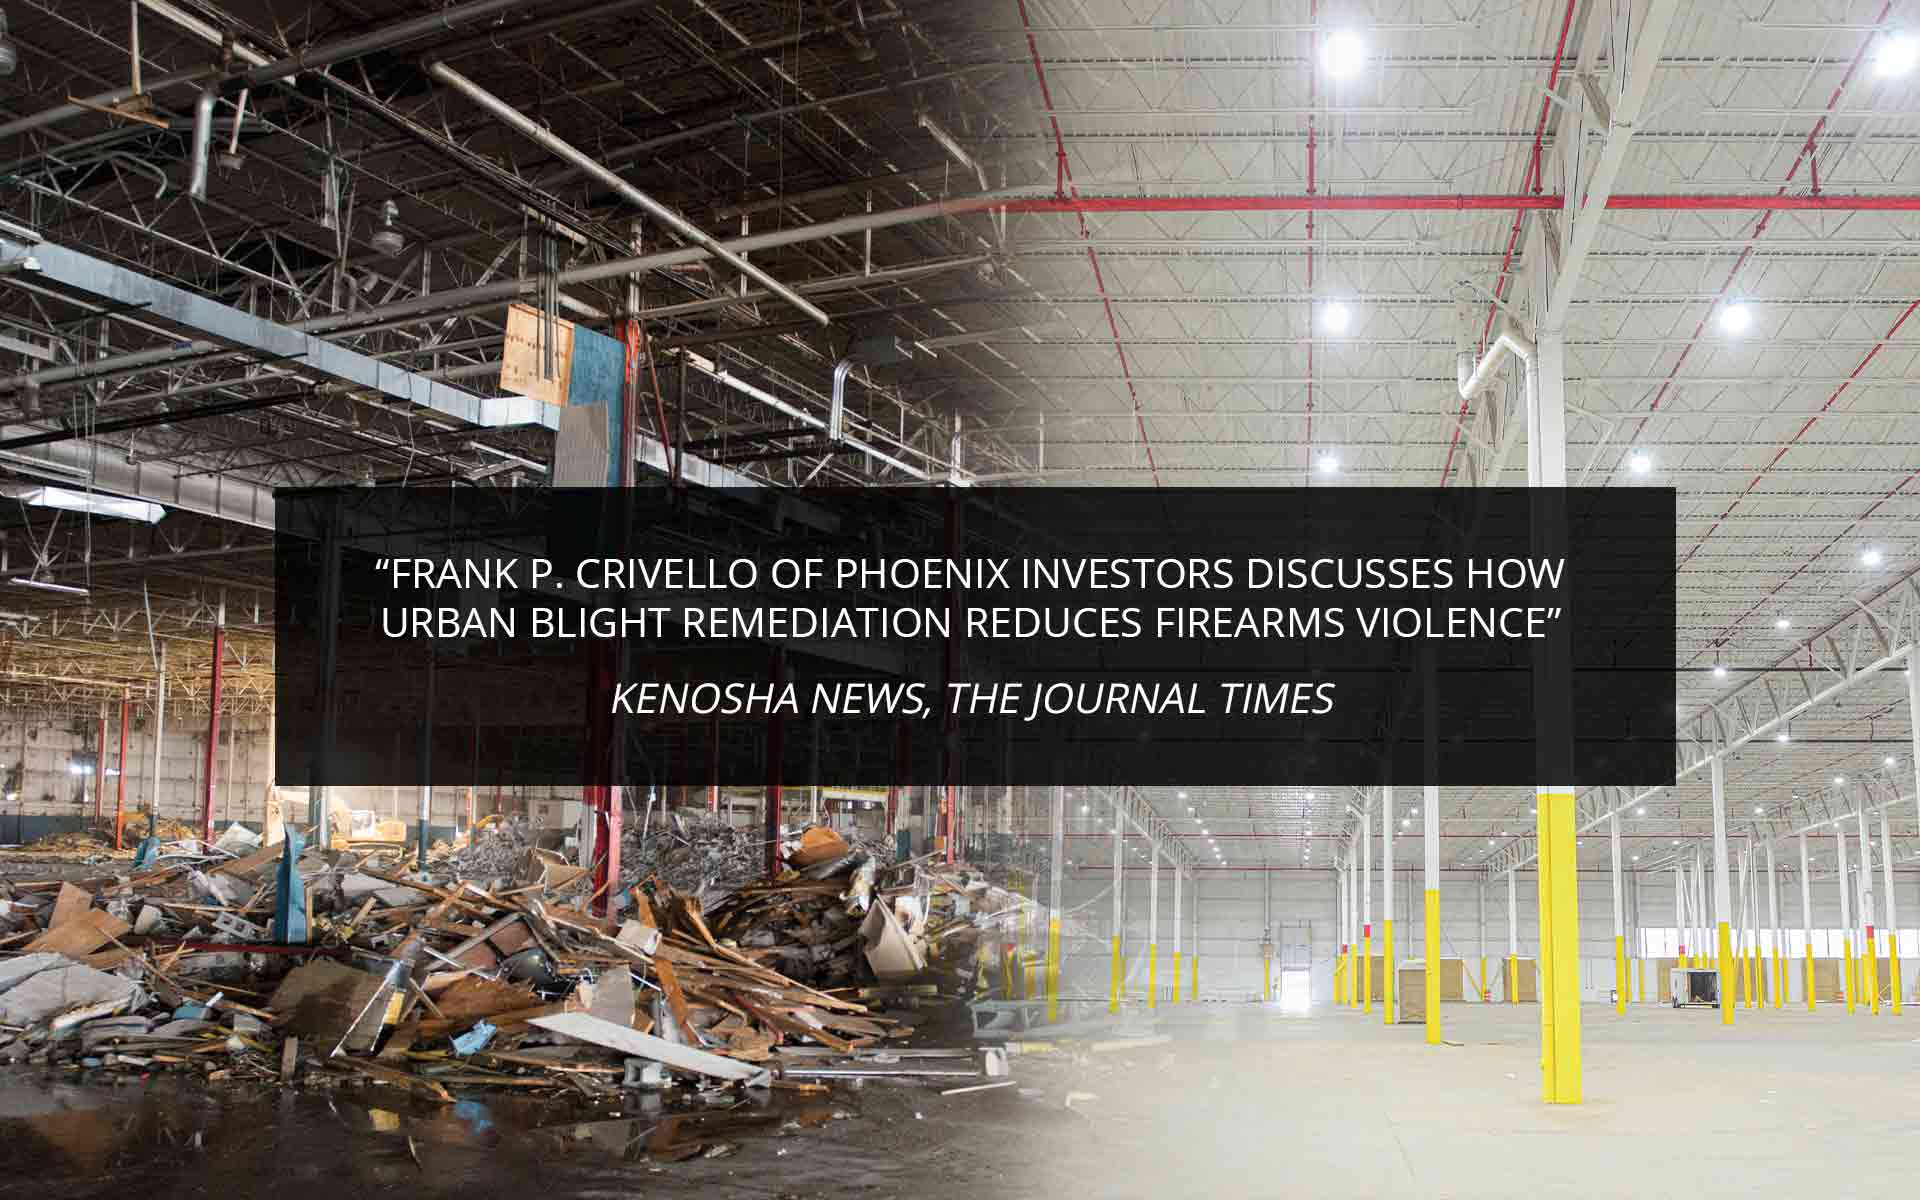 Frank P. Crivello of Phoenix Investors Discusses How Urban Blight Remediation Reduces Firearms Violence